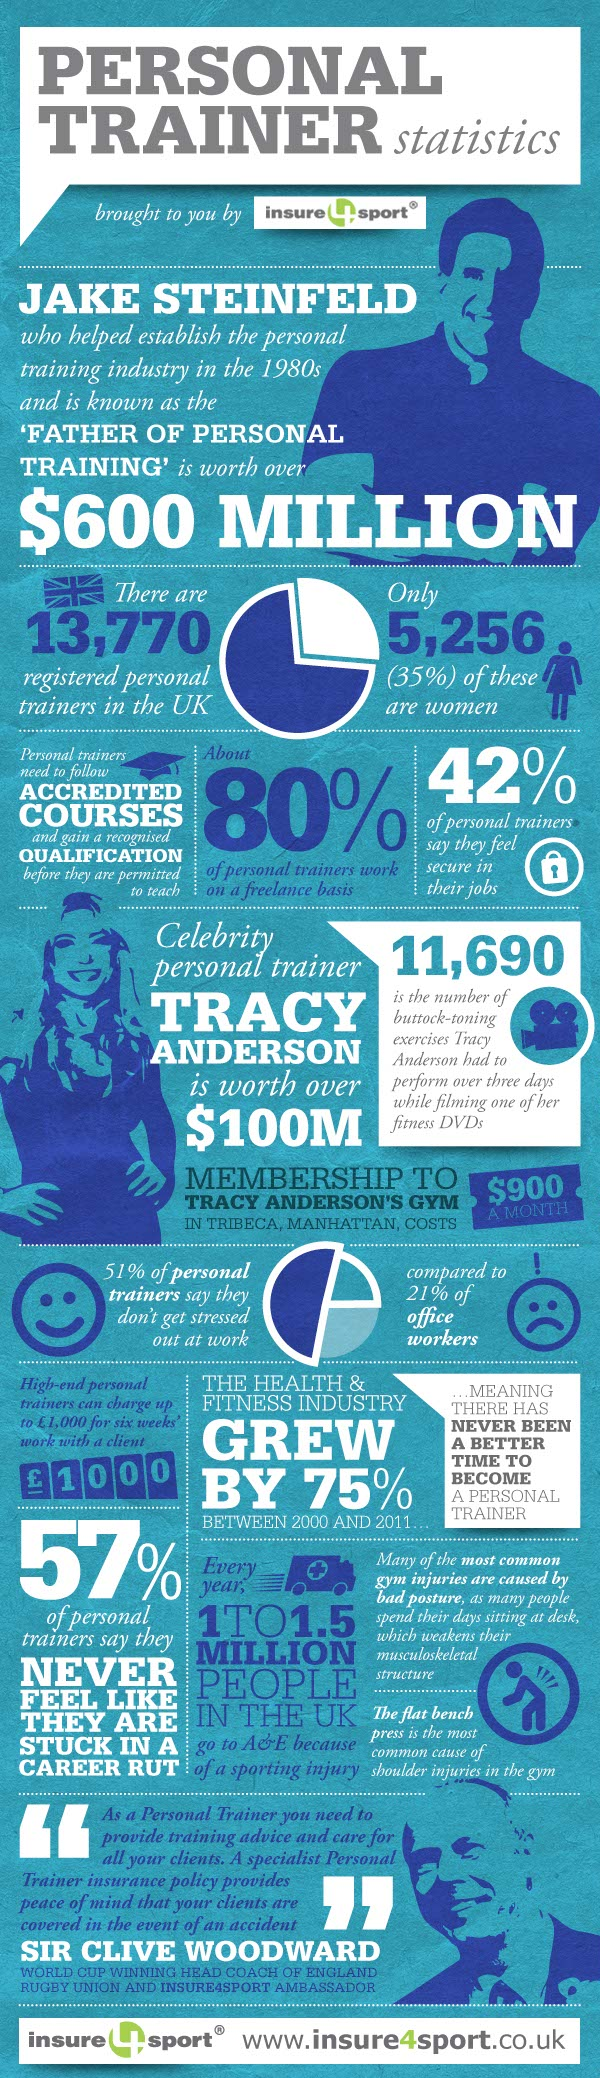 Personal Trainer Perks-Infographic